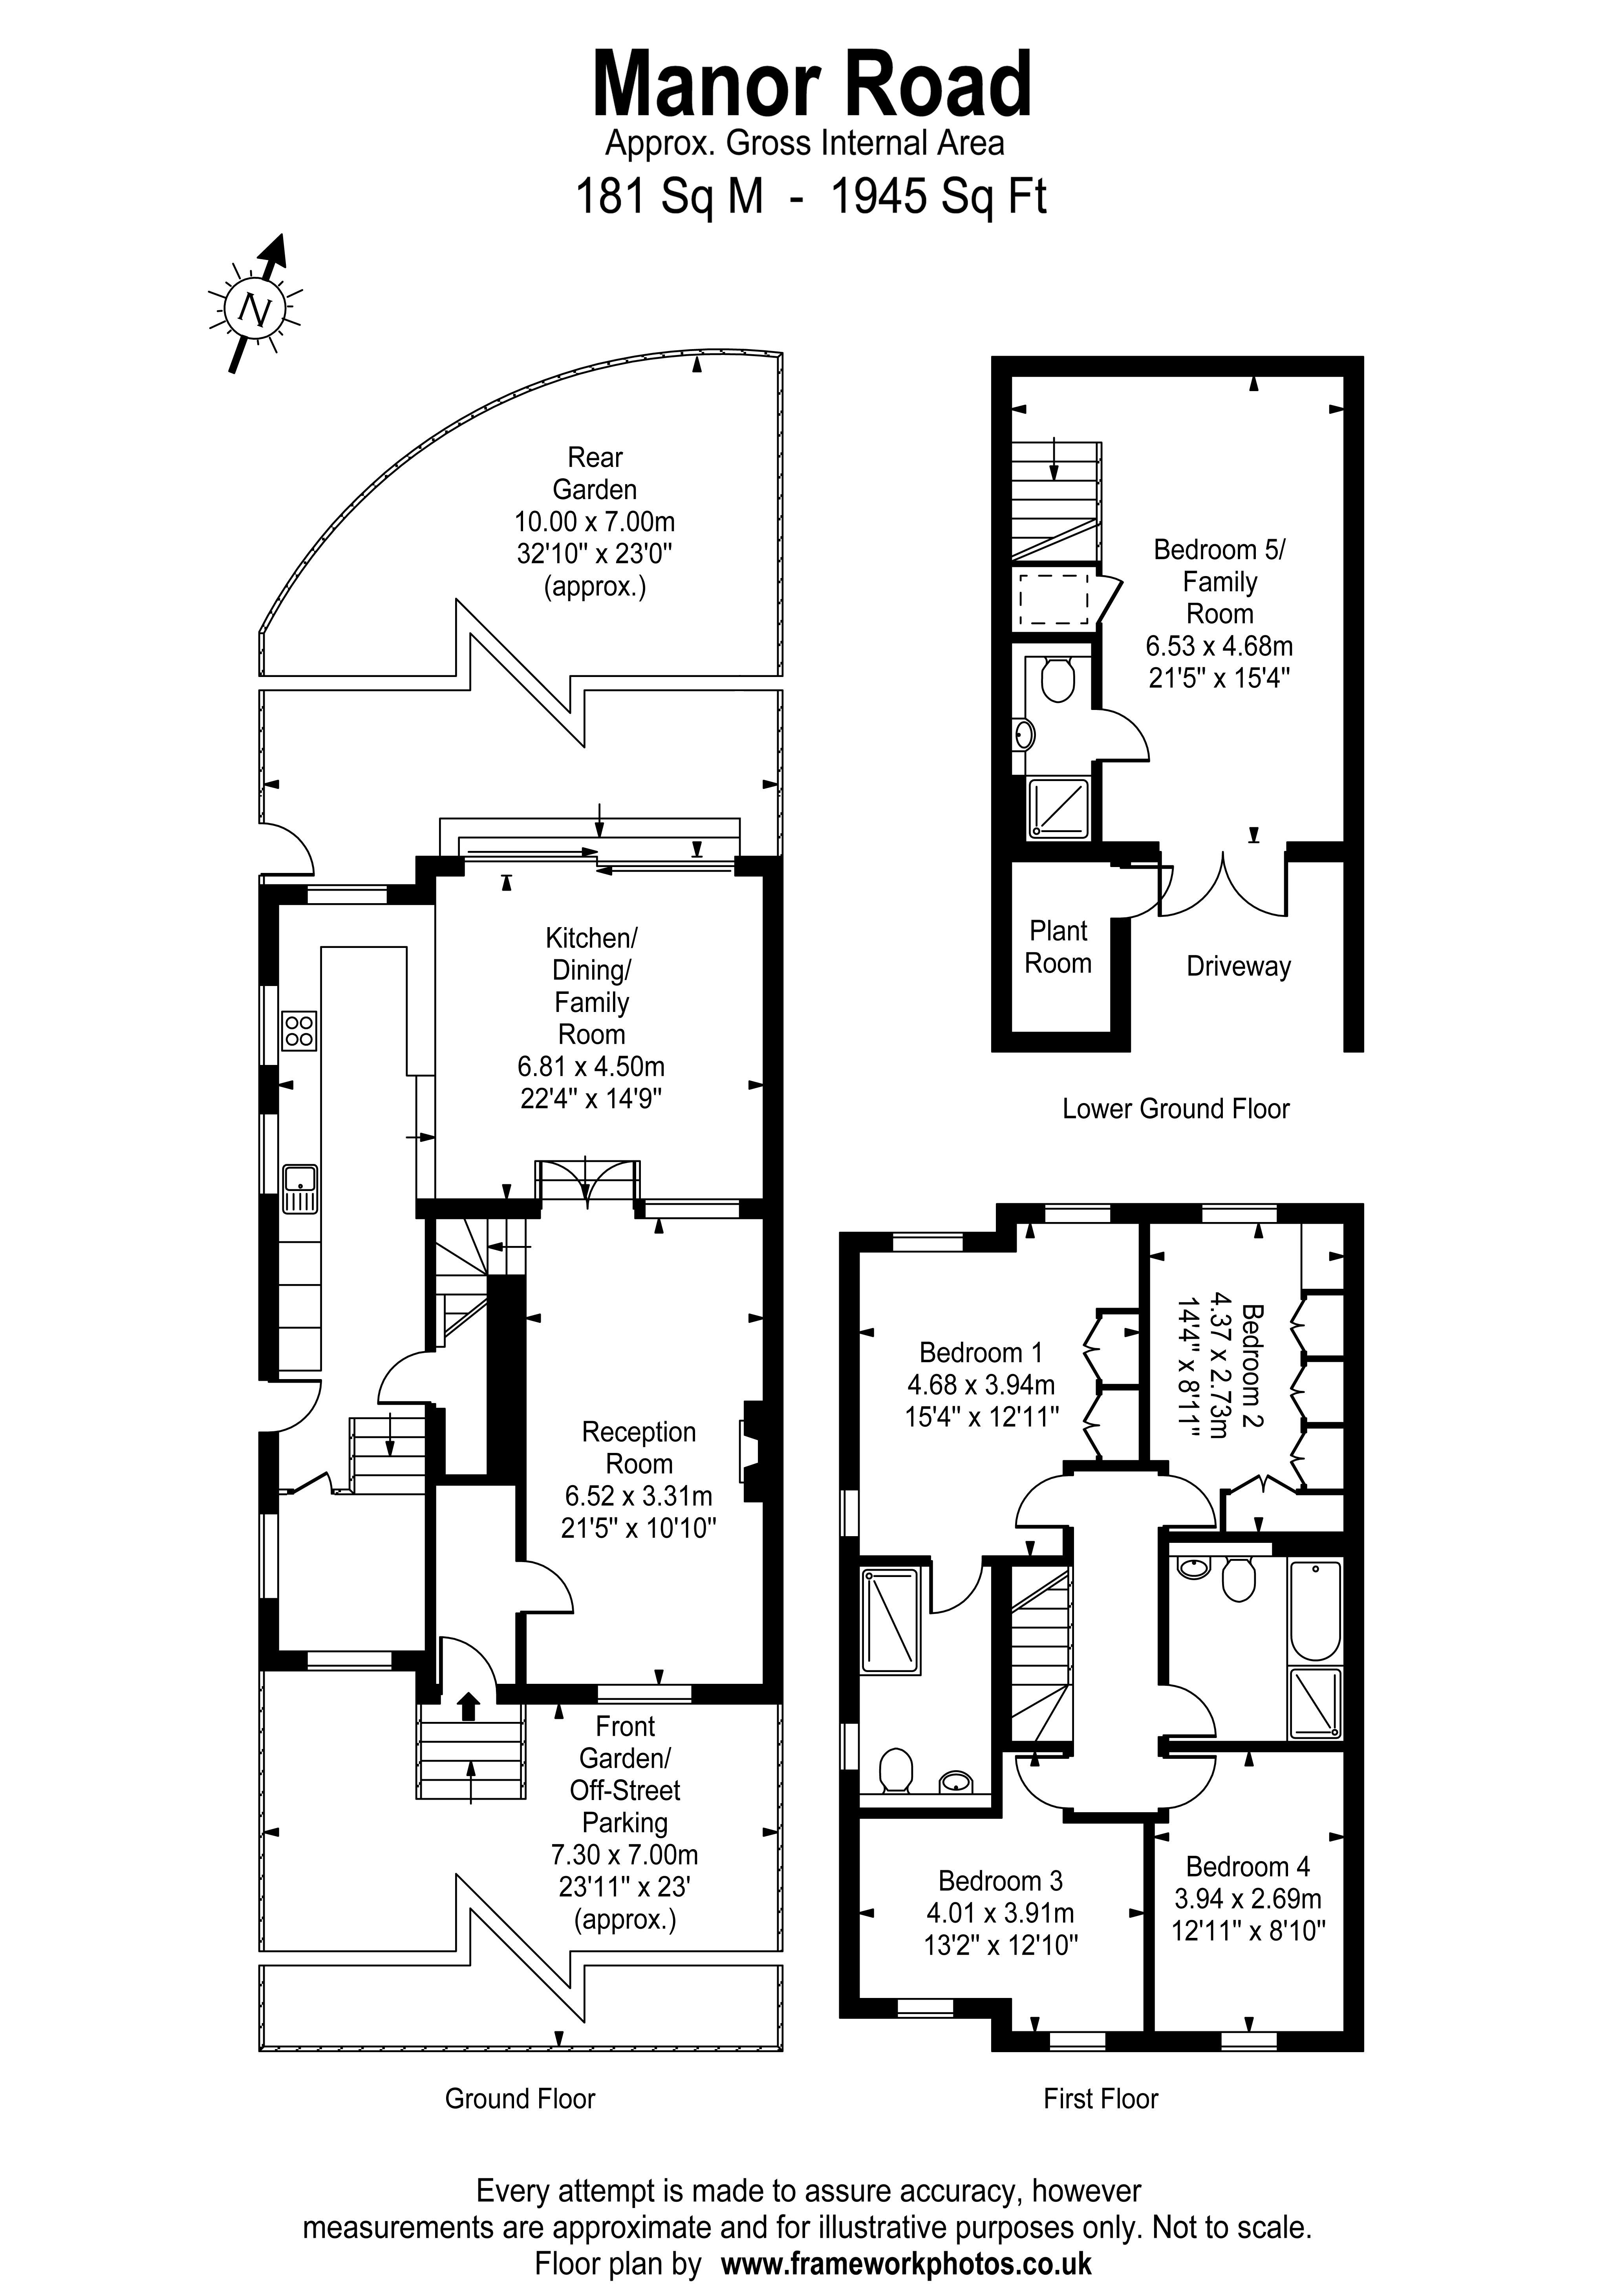 Floorplans For Manor Road, Teddington